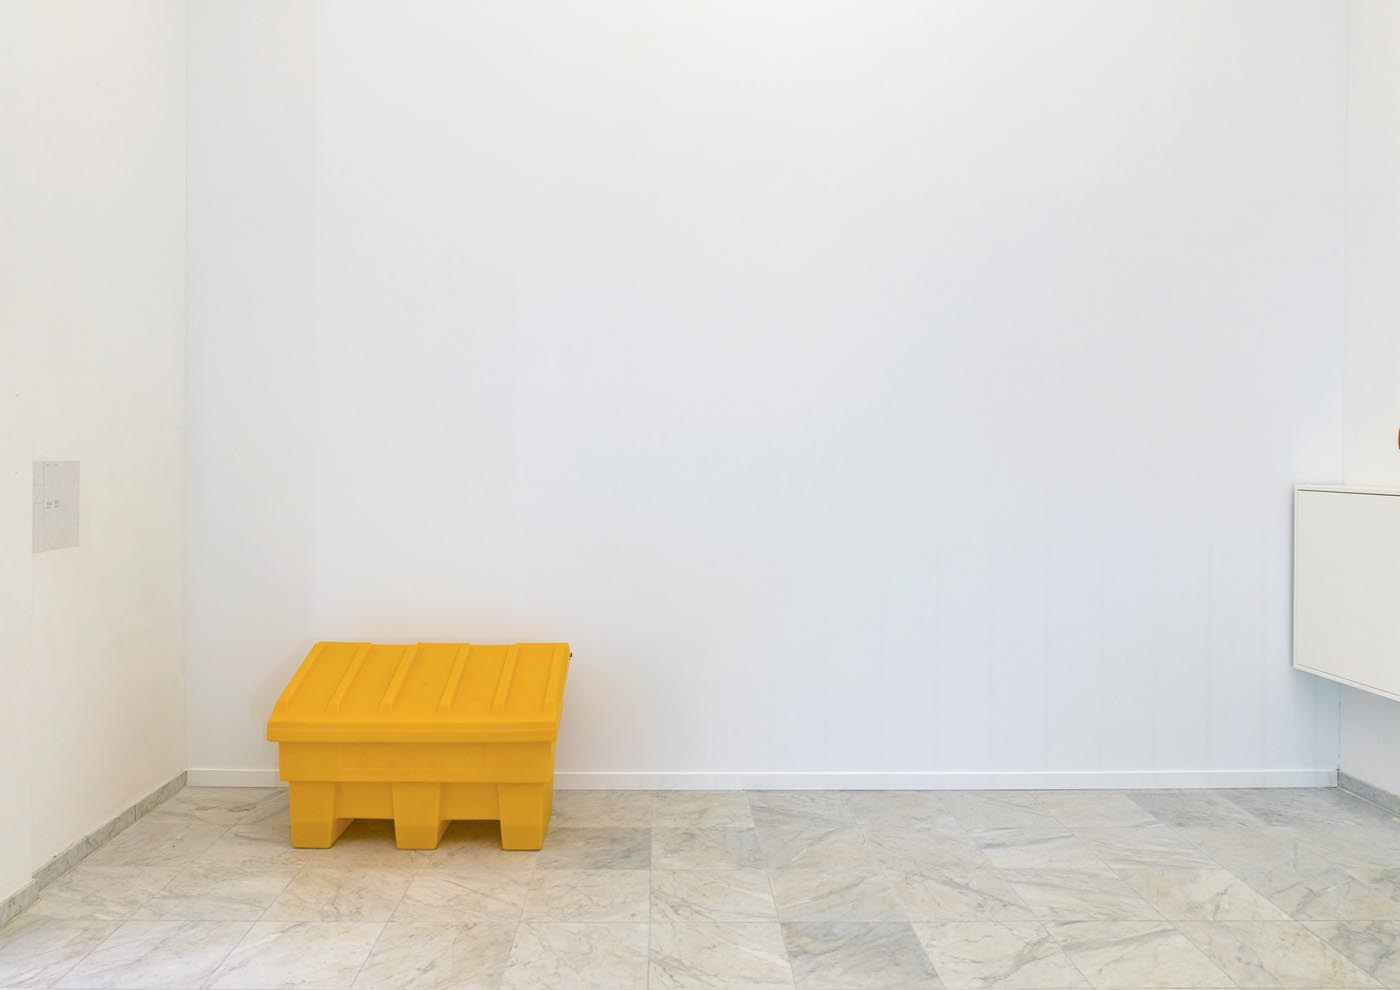 <p><em>Untitled</em>, 2015, 963×512×493cm, wood, plasterboard, wall paint<br /><em>A Surface</em>, 2015, salt box, water</p>